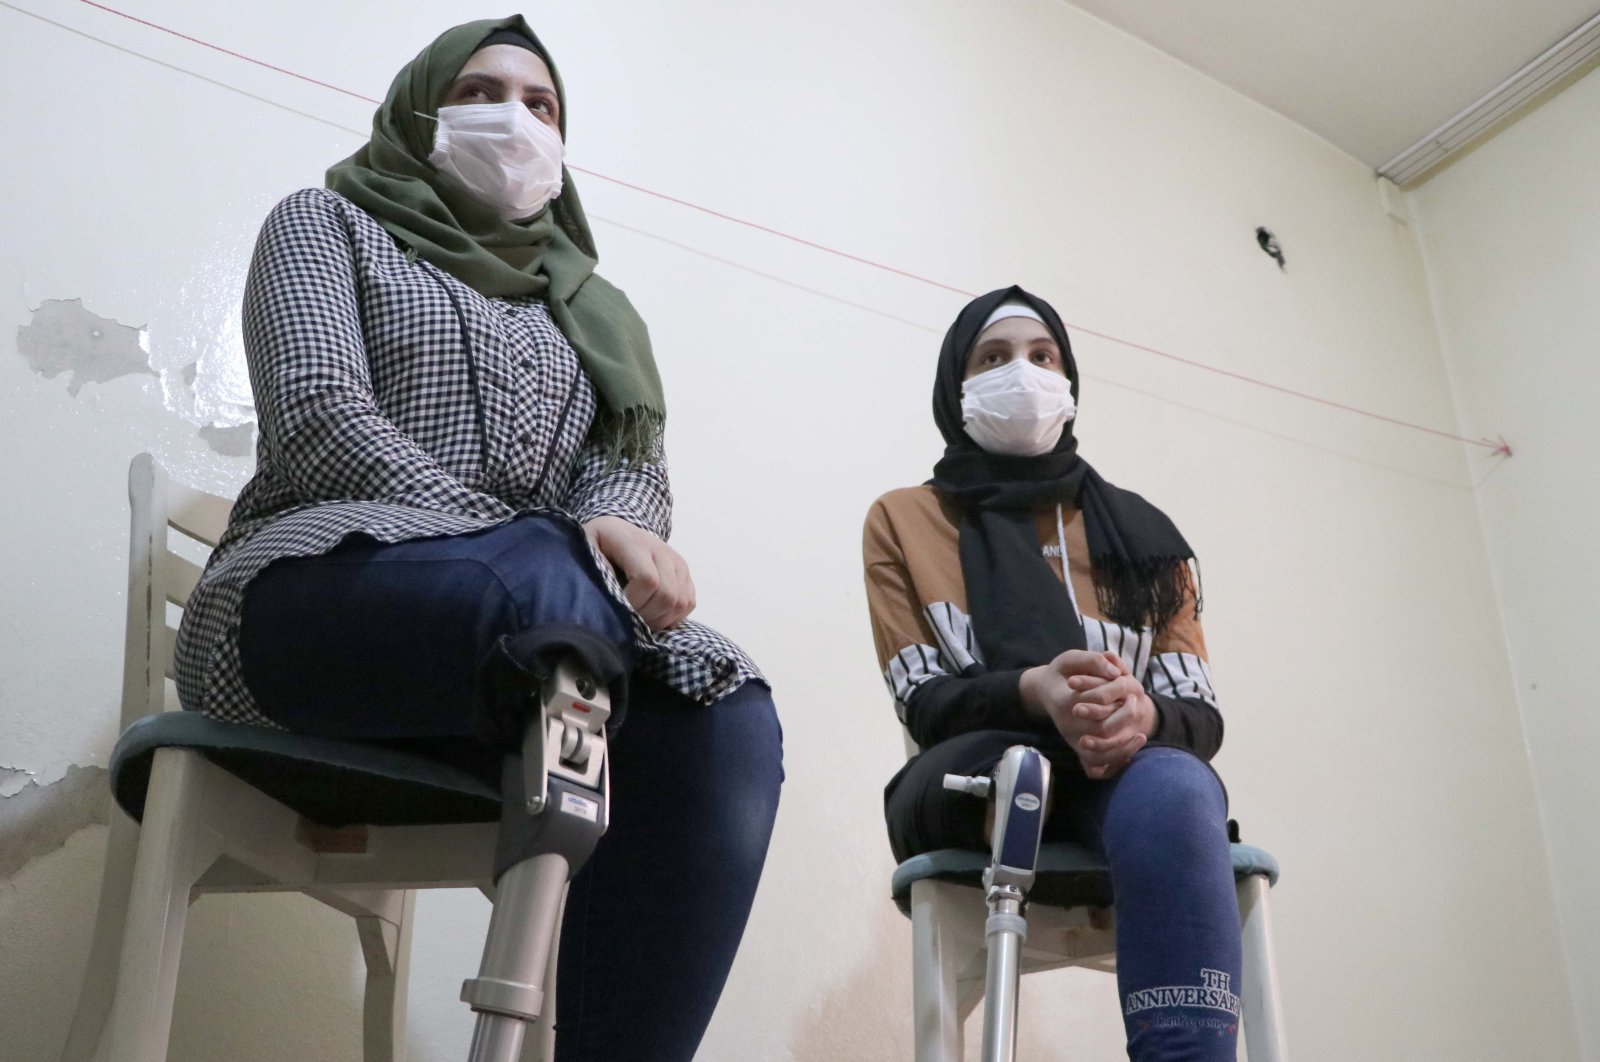 Mariam Aliomar (L) and Majidah Aliomar pose with their new prosthetic legs, in Gaziantep, southern Turkey, March. 21, 2021. (AA PHOTO)